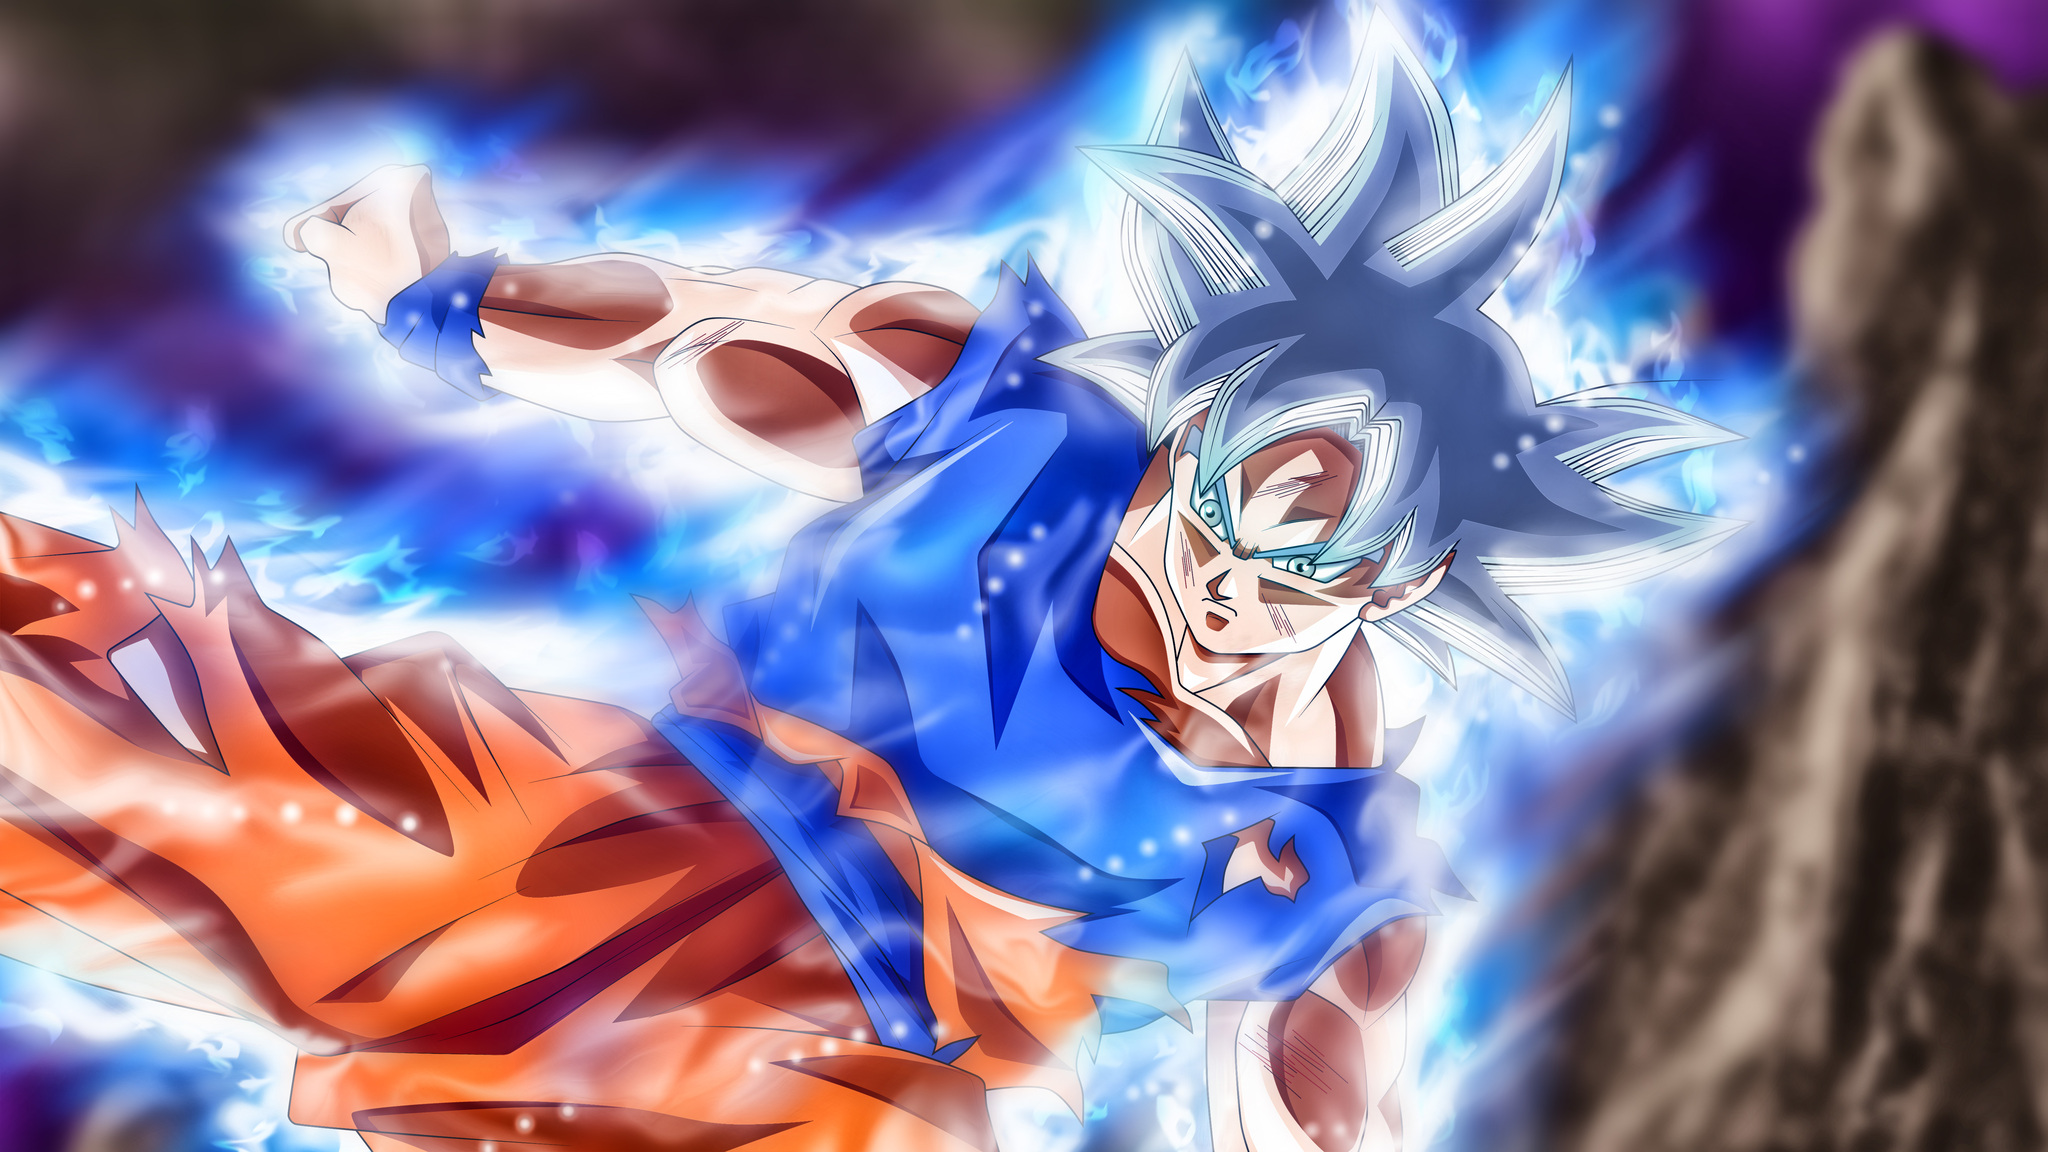 Goku Ultra Instinct Wallpaper Hd: 2048x1152 Goku Jiren Masterd Ultra Instinct 2048x1152